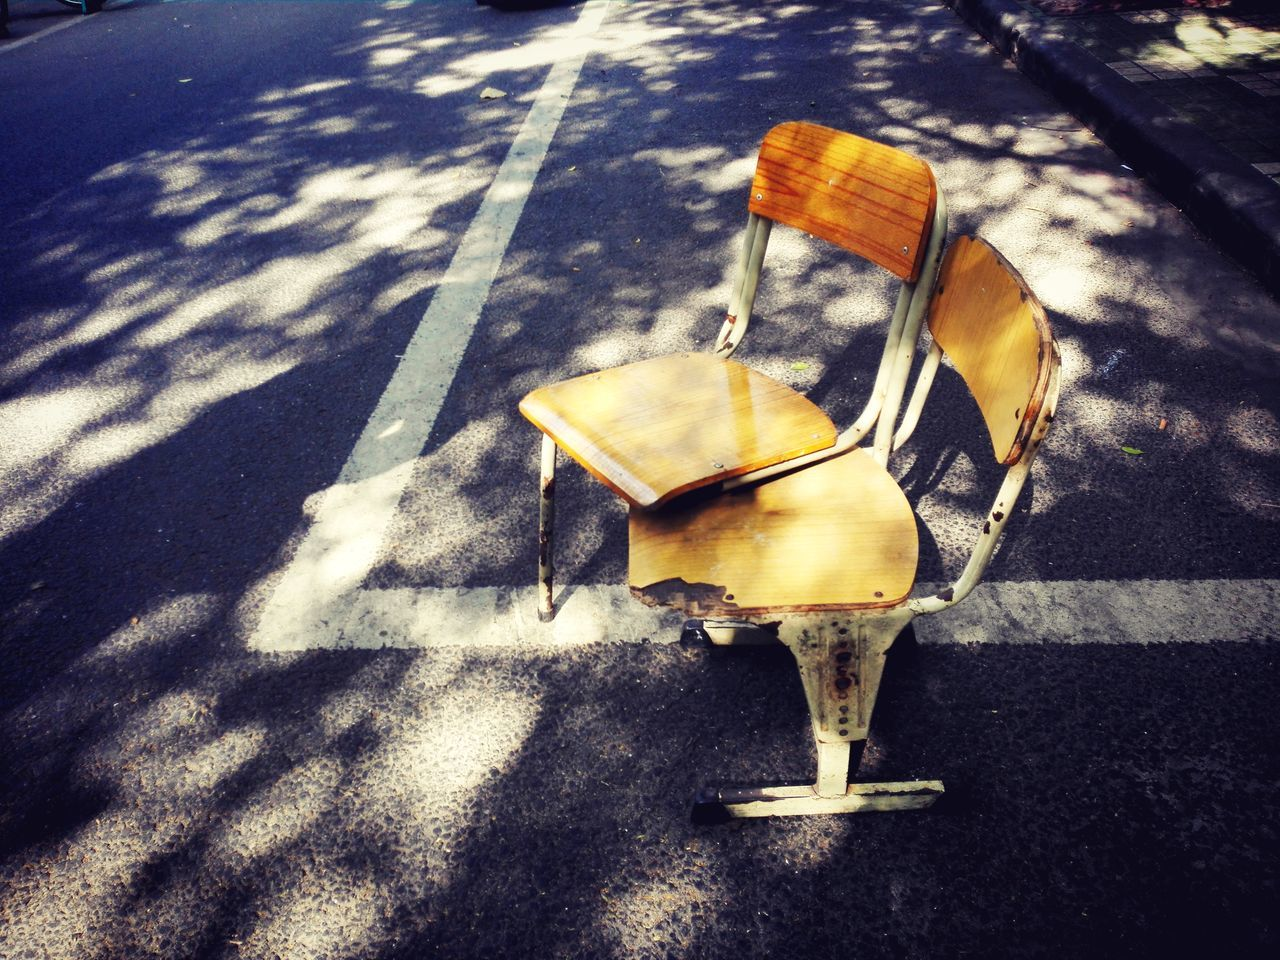 no people, sunlight, shadow, day, high angle view, nature, street, wood - material, city, road, seat, outdoors, still life, absence, close-up, transportation, footpath, empty, sidewalk, table